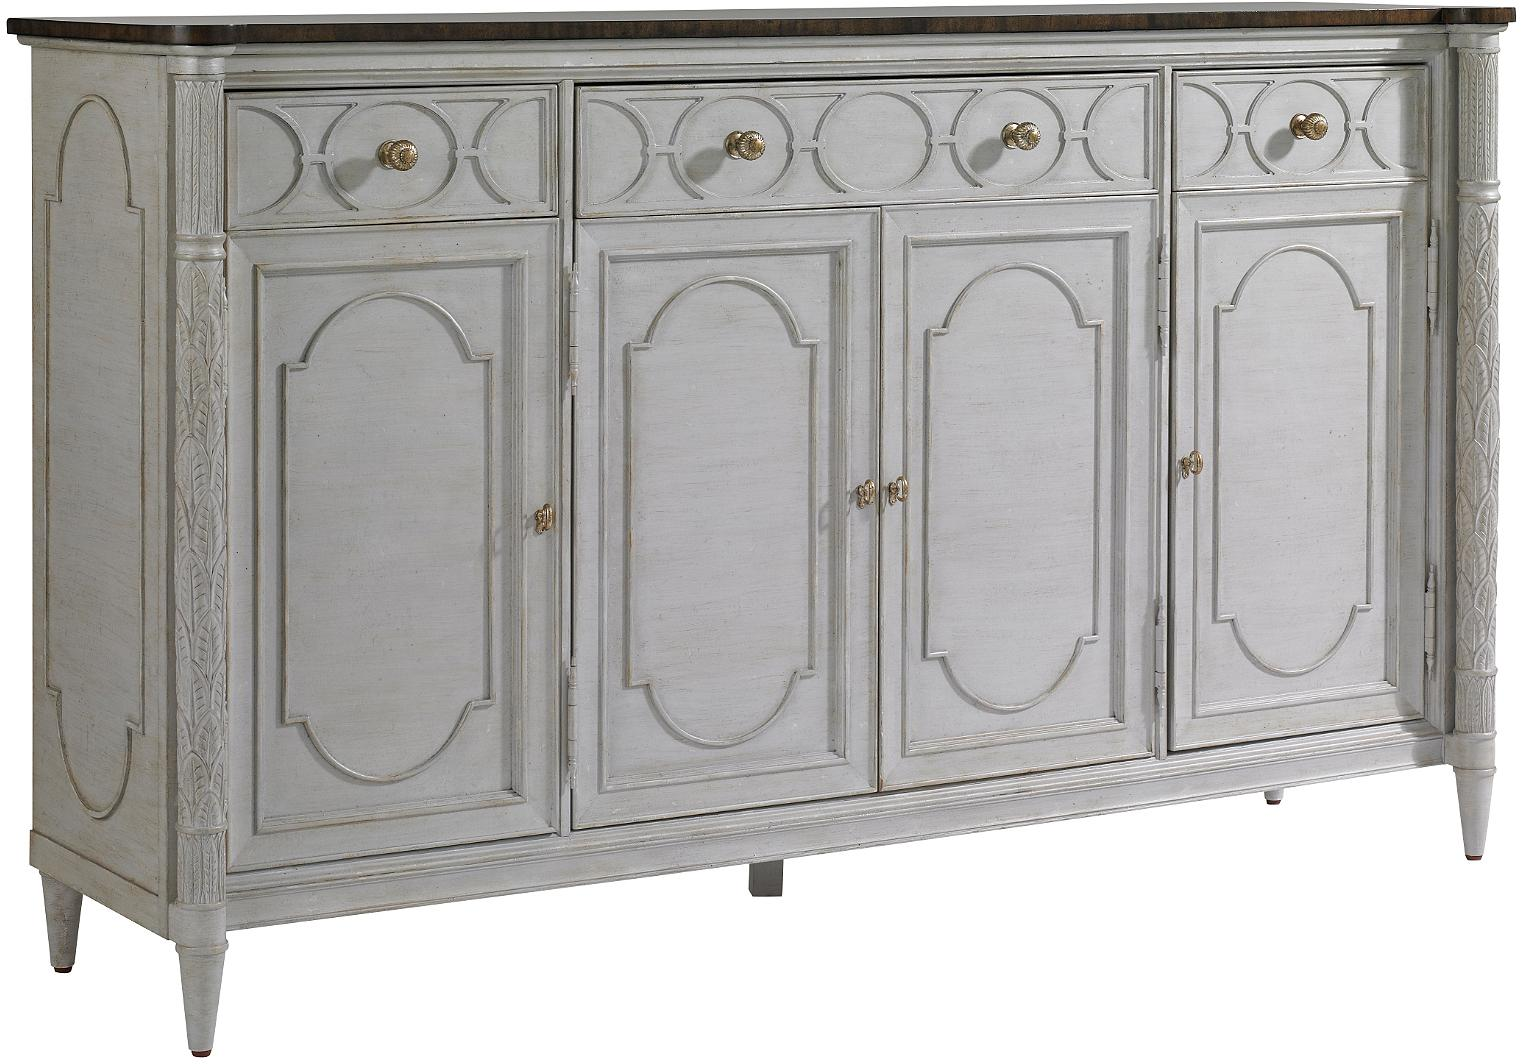 Stanley Furniture Charleston Regency East Battery Buffet - Item Number: 302-51-05